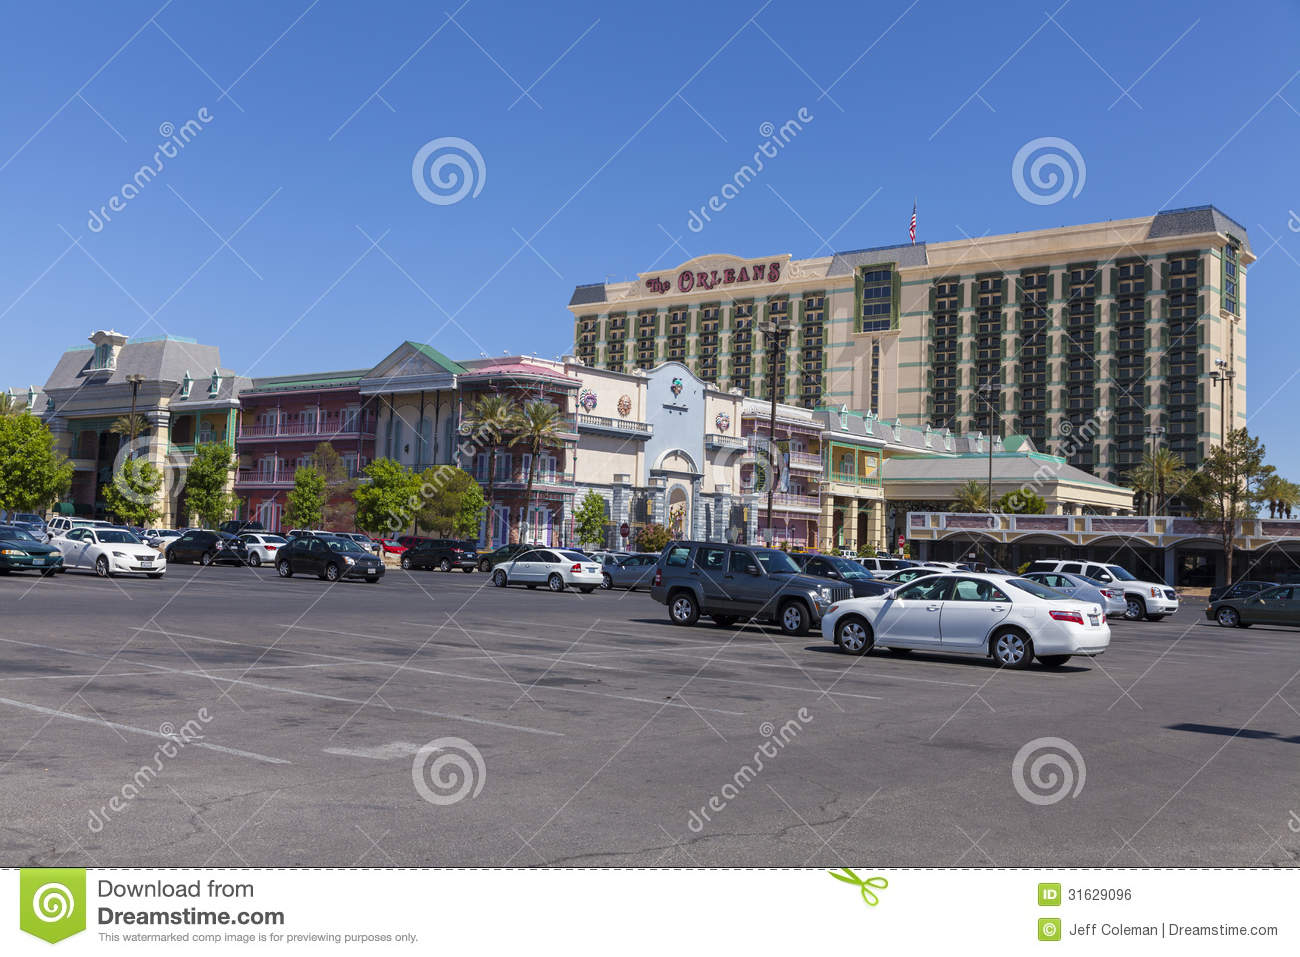 The Orleans Hotel And Casino Las Vegas Nv United States